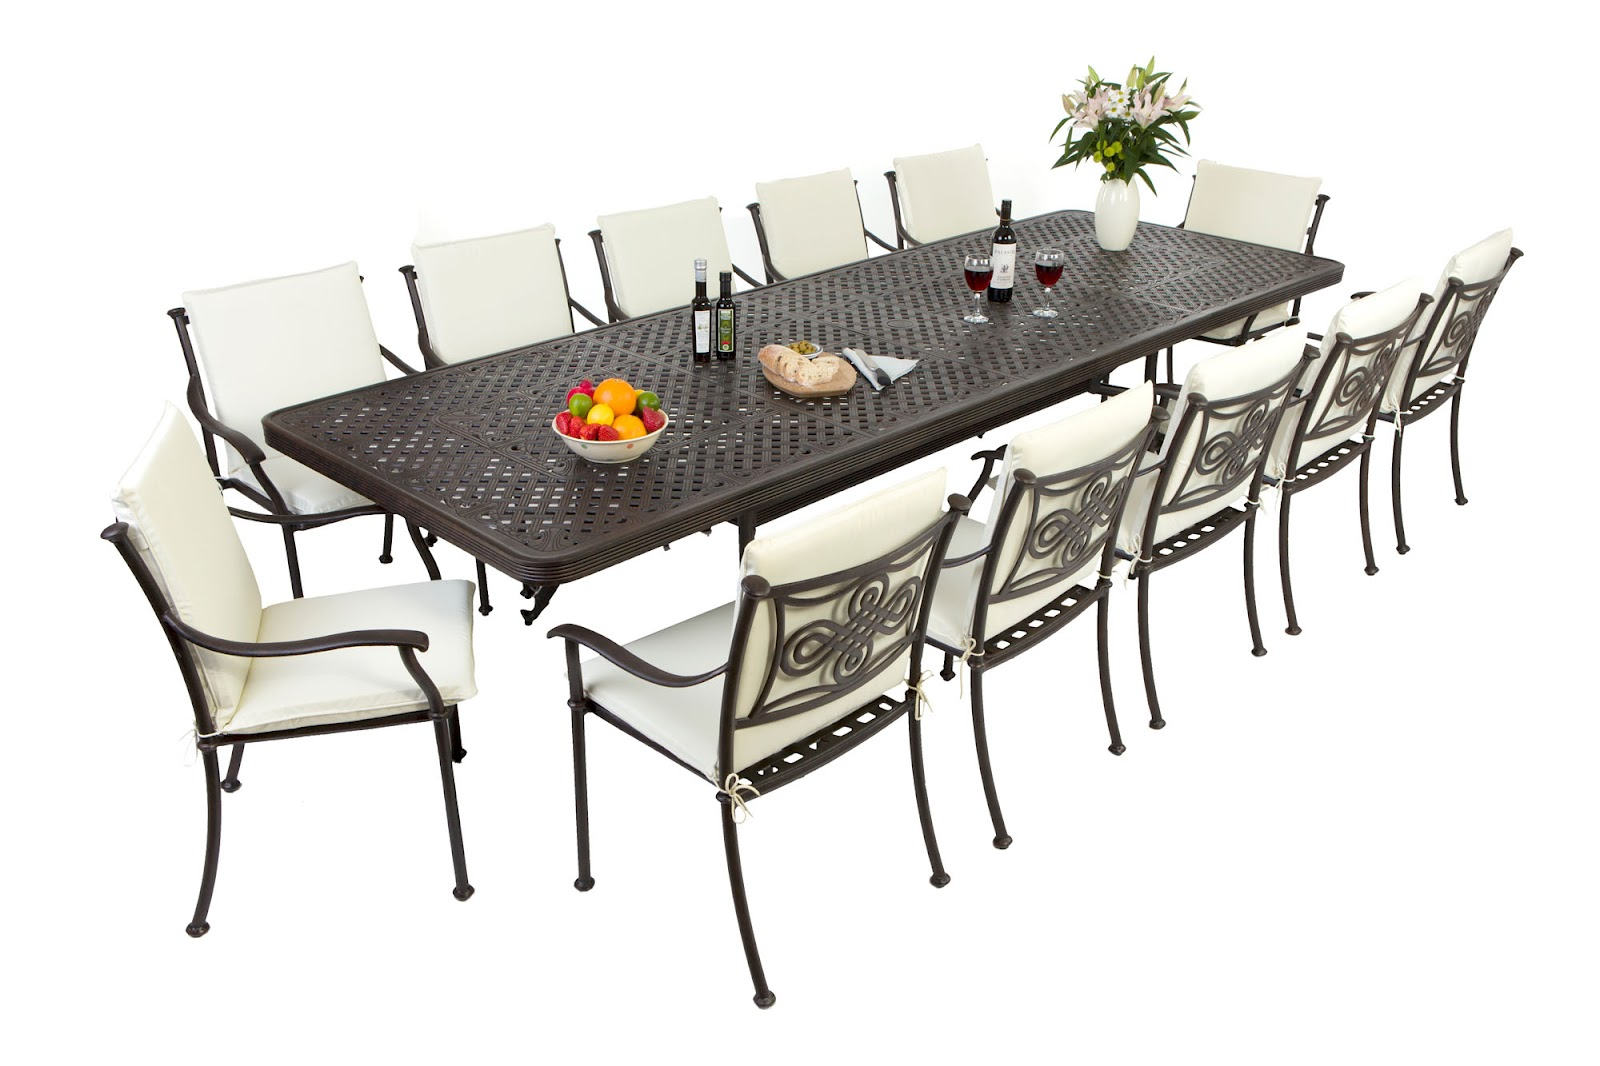 outdoor aluminium table and chairs home depot patio chair cushion covers outside edge garden furniture blog